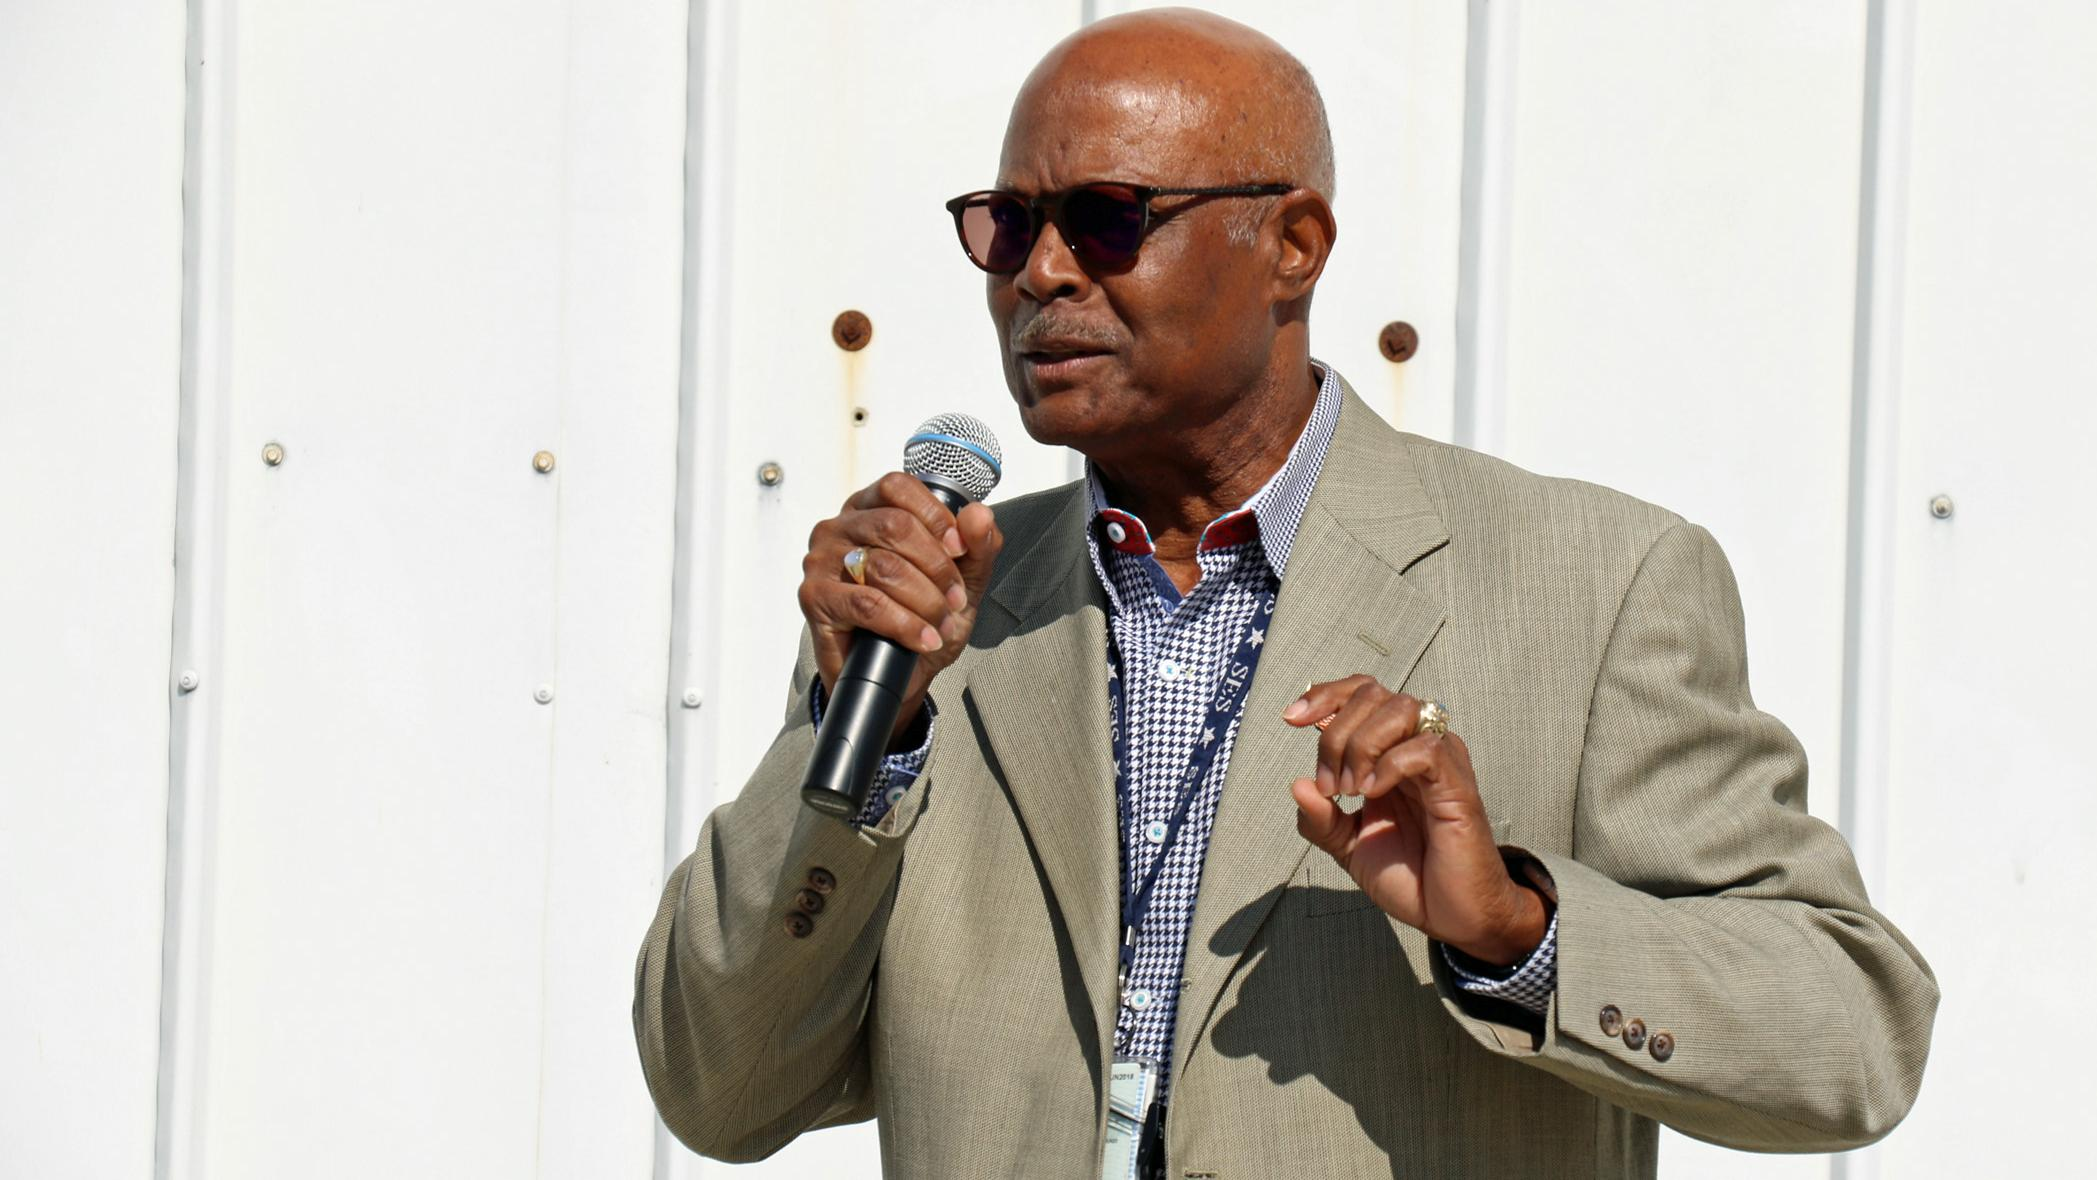 Dr. Ron Smiley speaks about his passion for innovation and mentoring during a ceremony celebrating the opening of the Innovation LaunchPad at Point Mugu in June 2018.